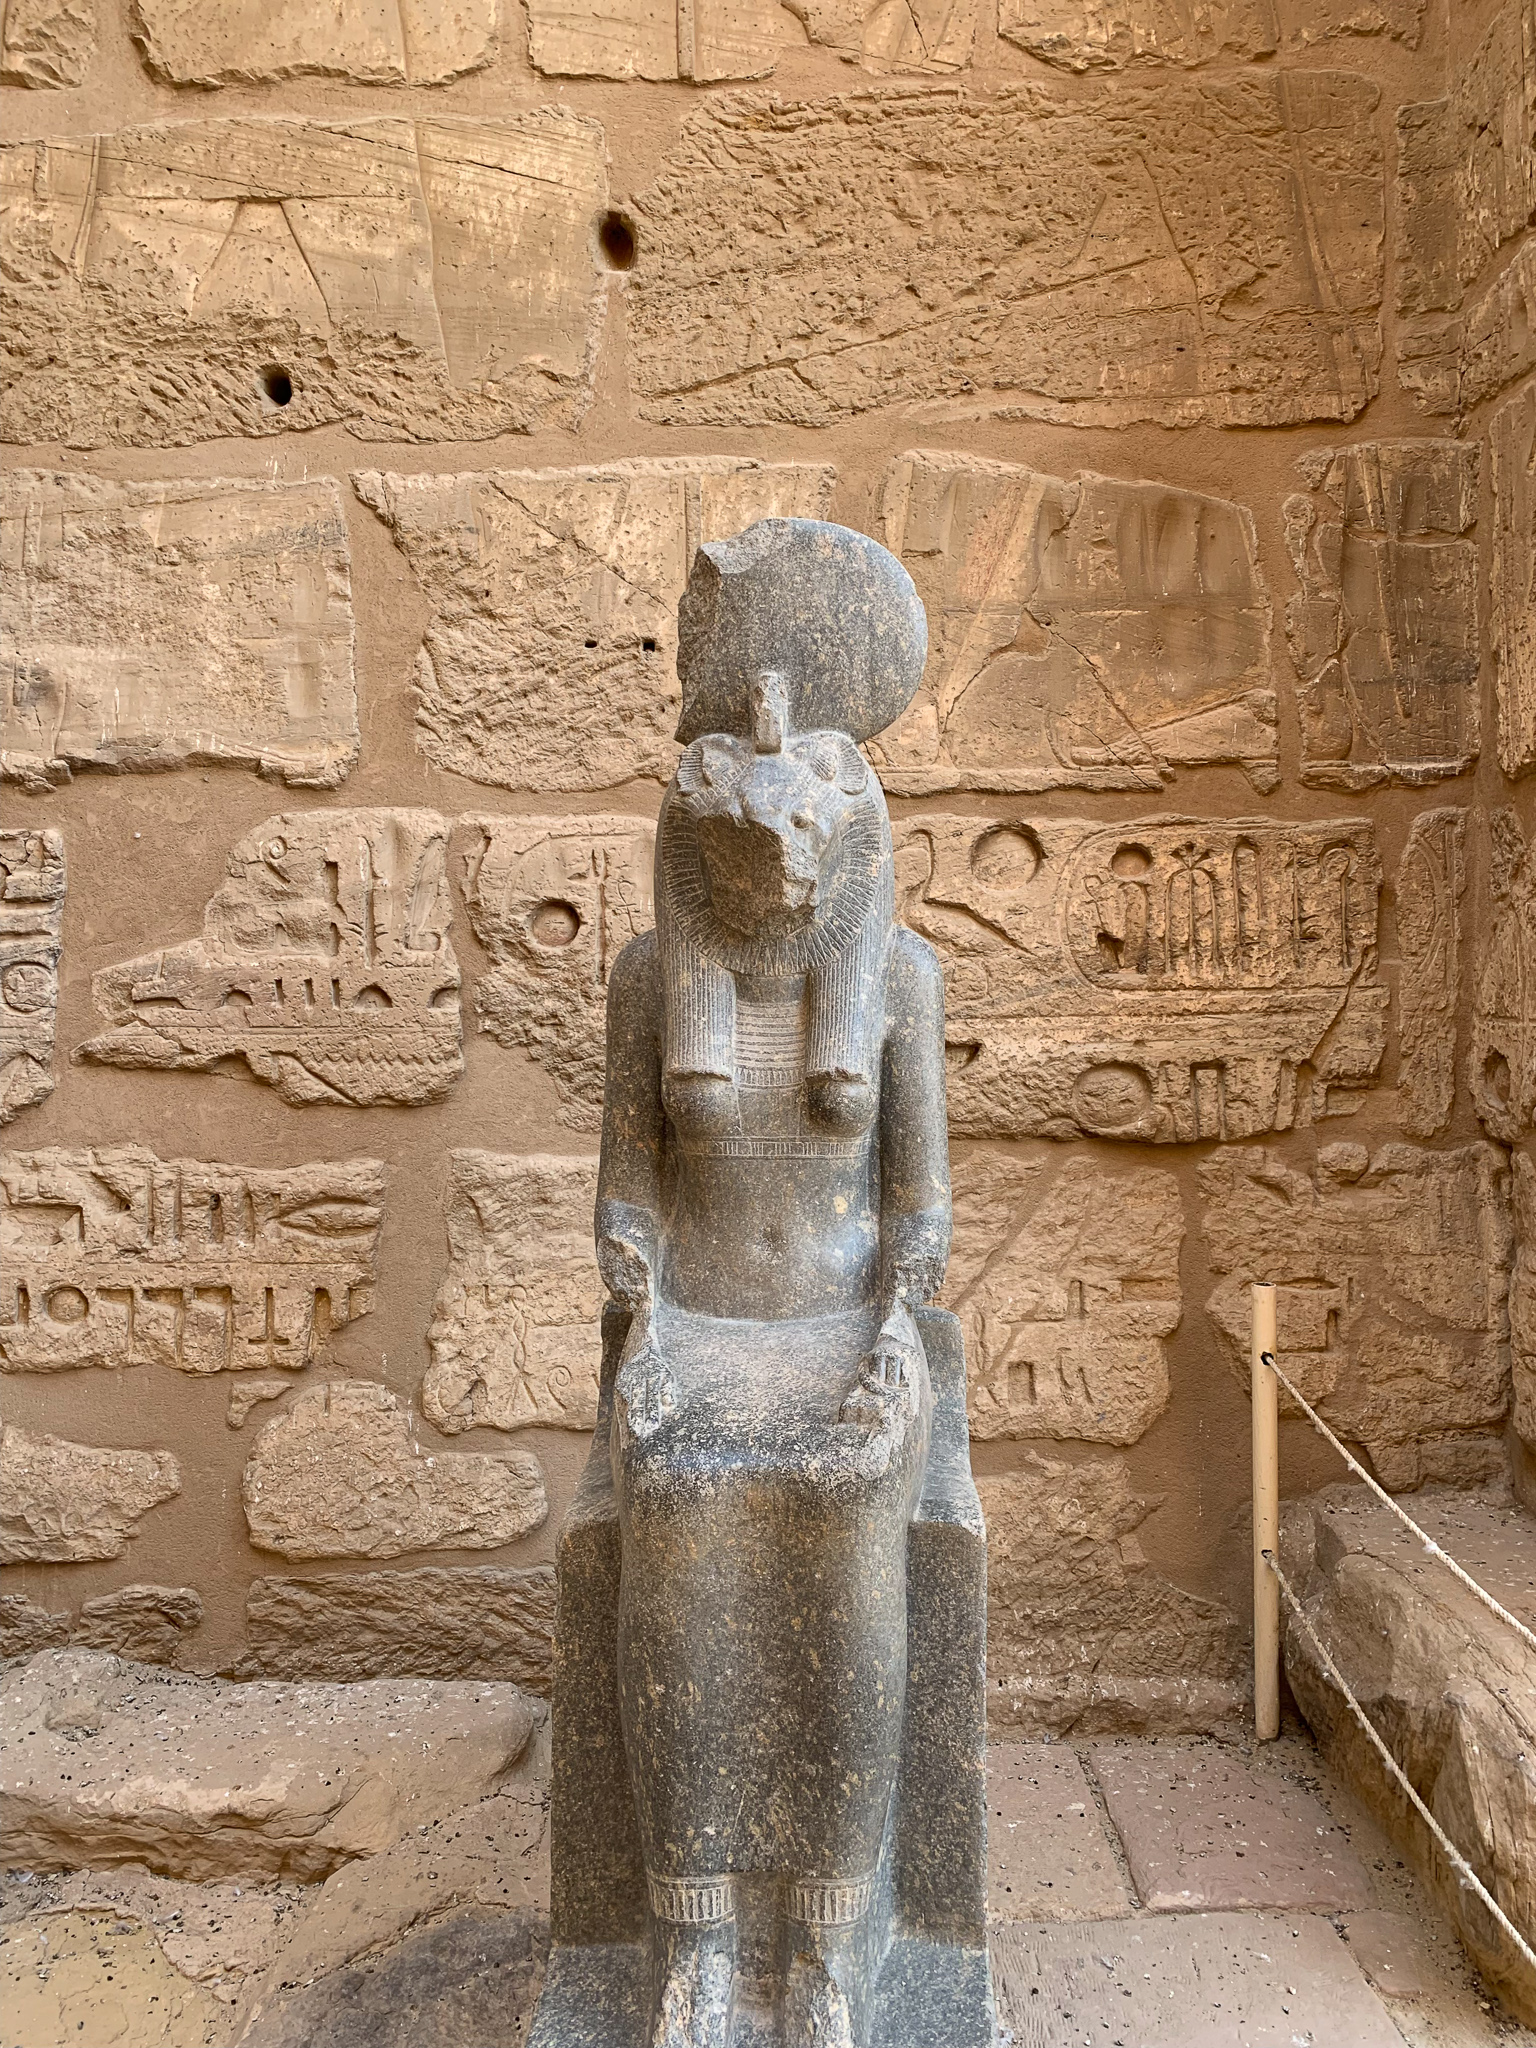 The Temple of Thoth